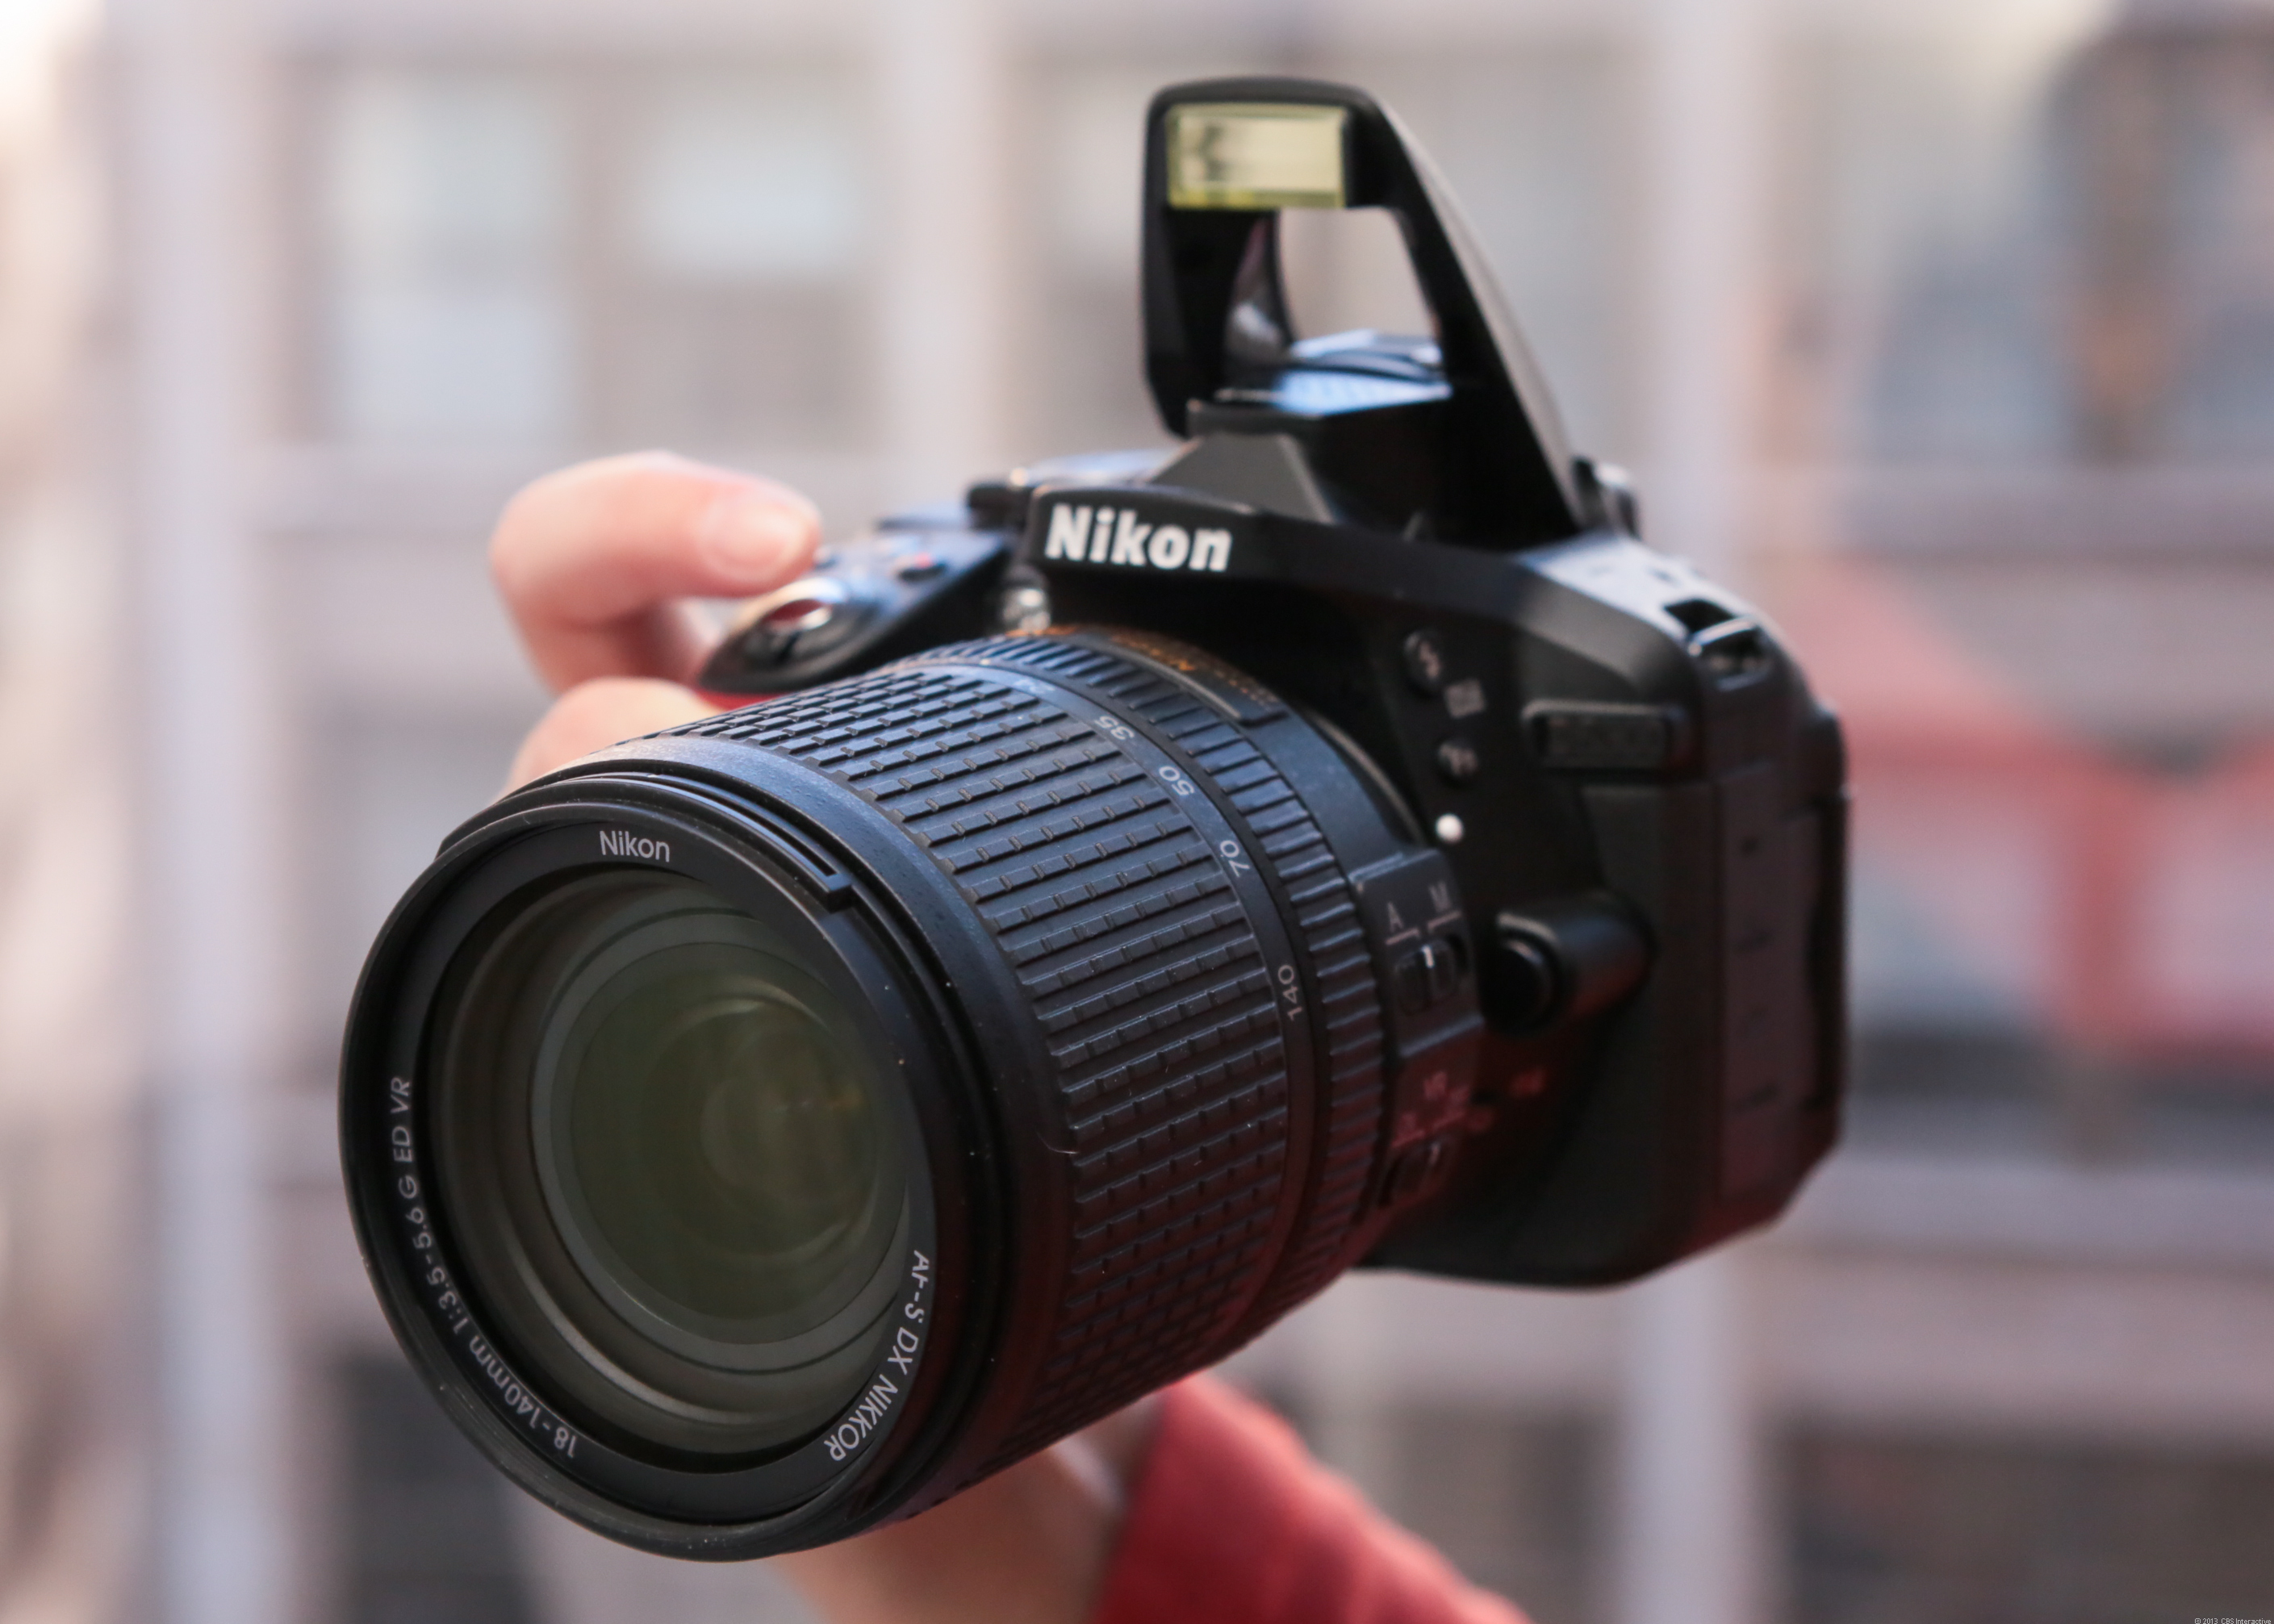 Nikon D5300 (Body Only, Black)